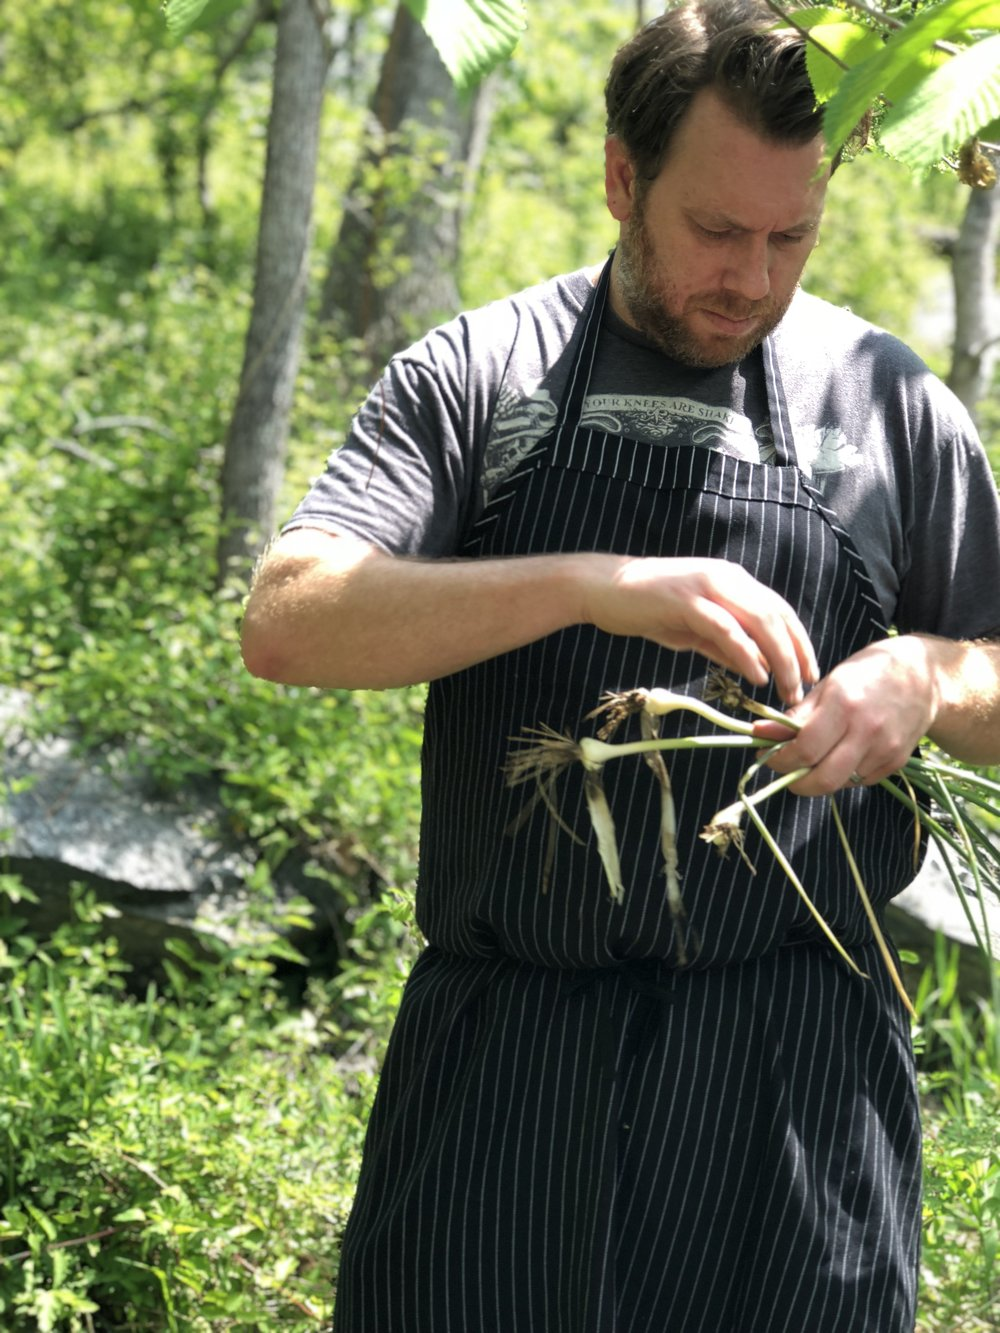 Bourbon Steak Chef Drew Adams pulls wild onions during a foraging hike in maryland.